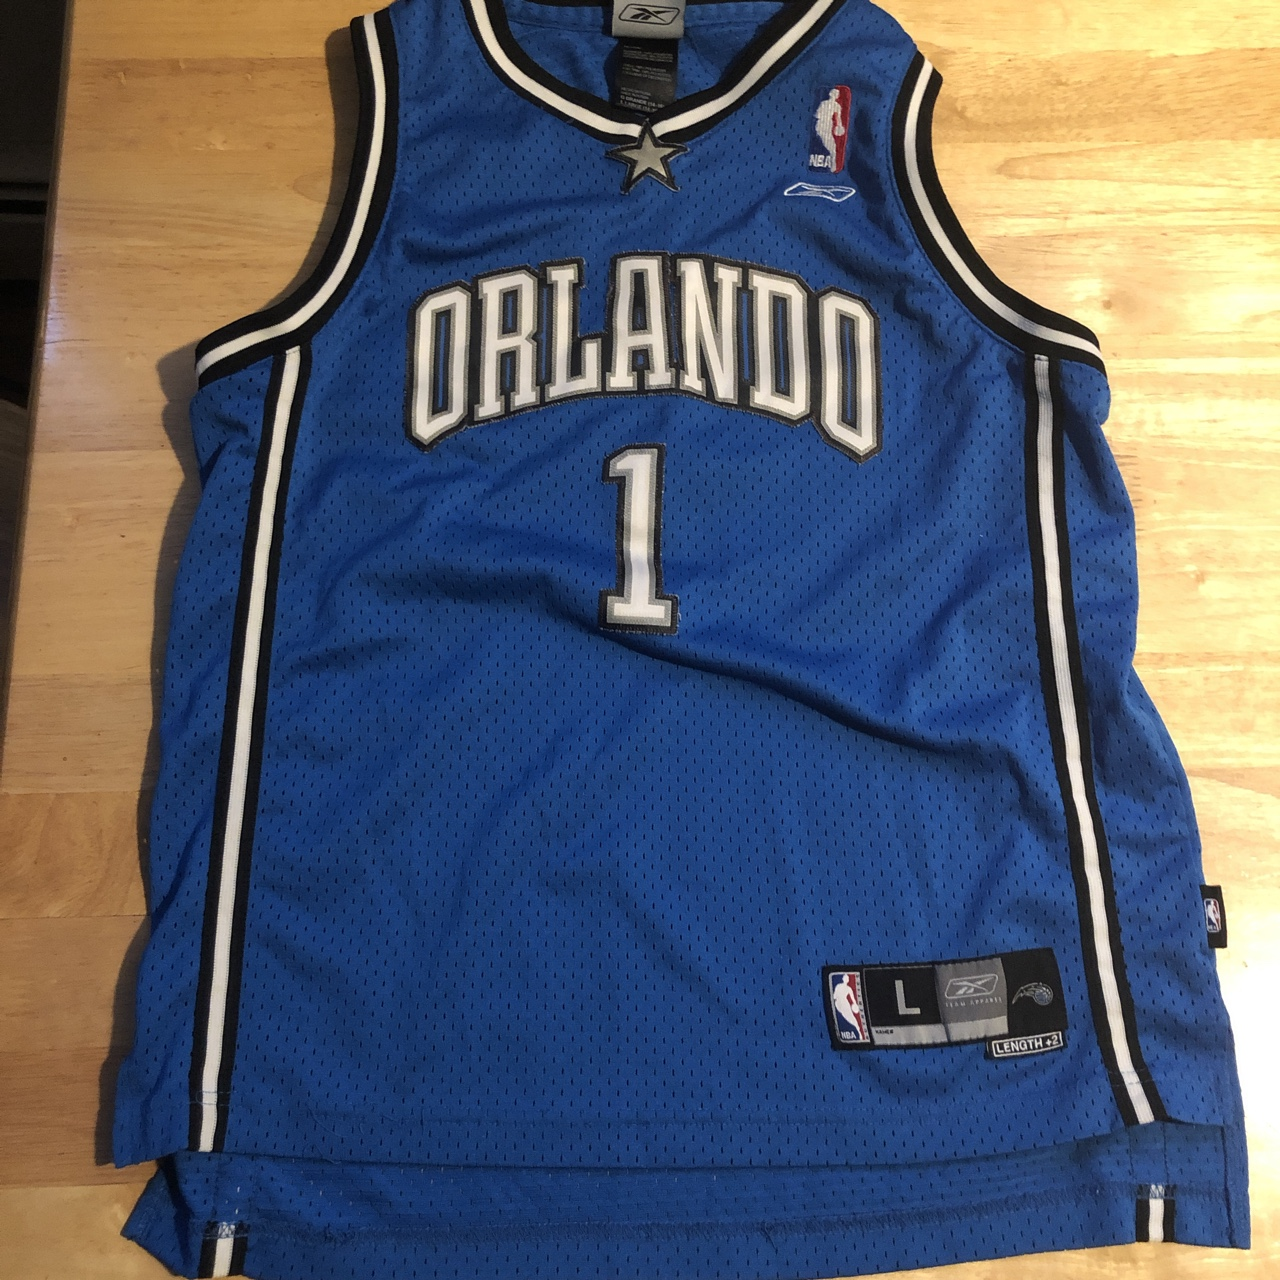 online retailer f42a3 440ff YOUTH Size NBA Jersey Orlando Magic Tracy McGrady... - Depop